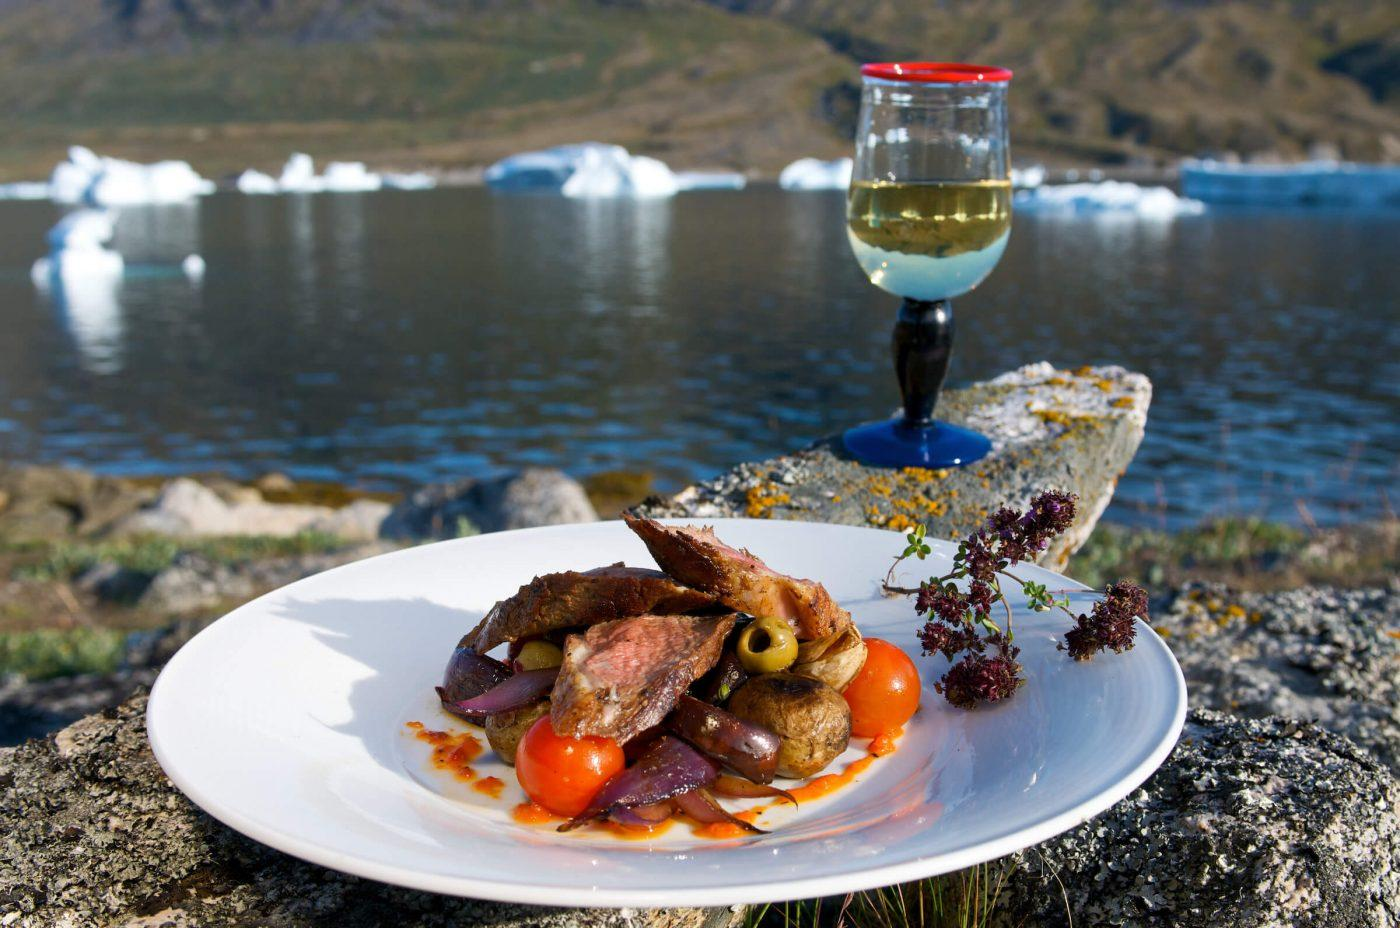 Greenlandic lamb dish, by Ace and Ace